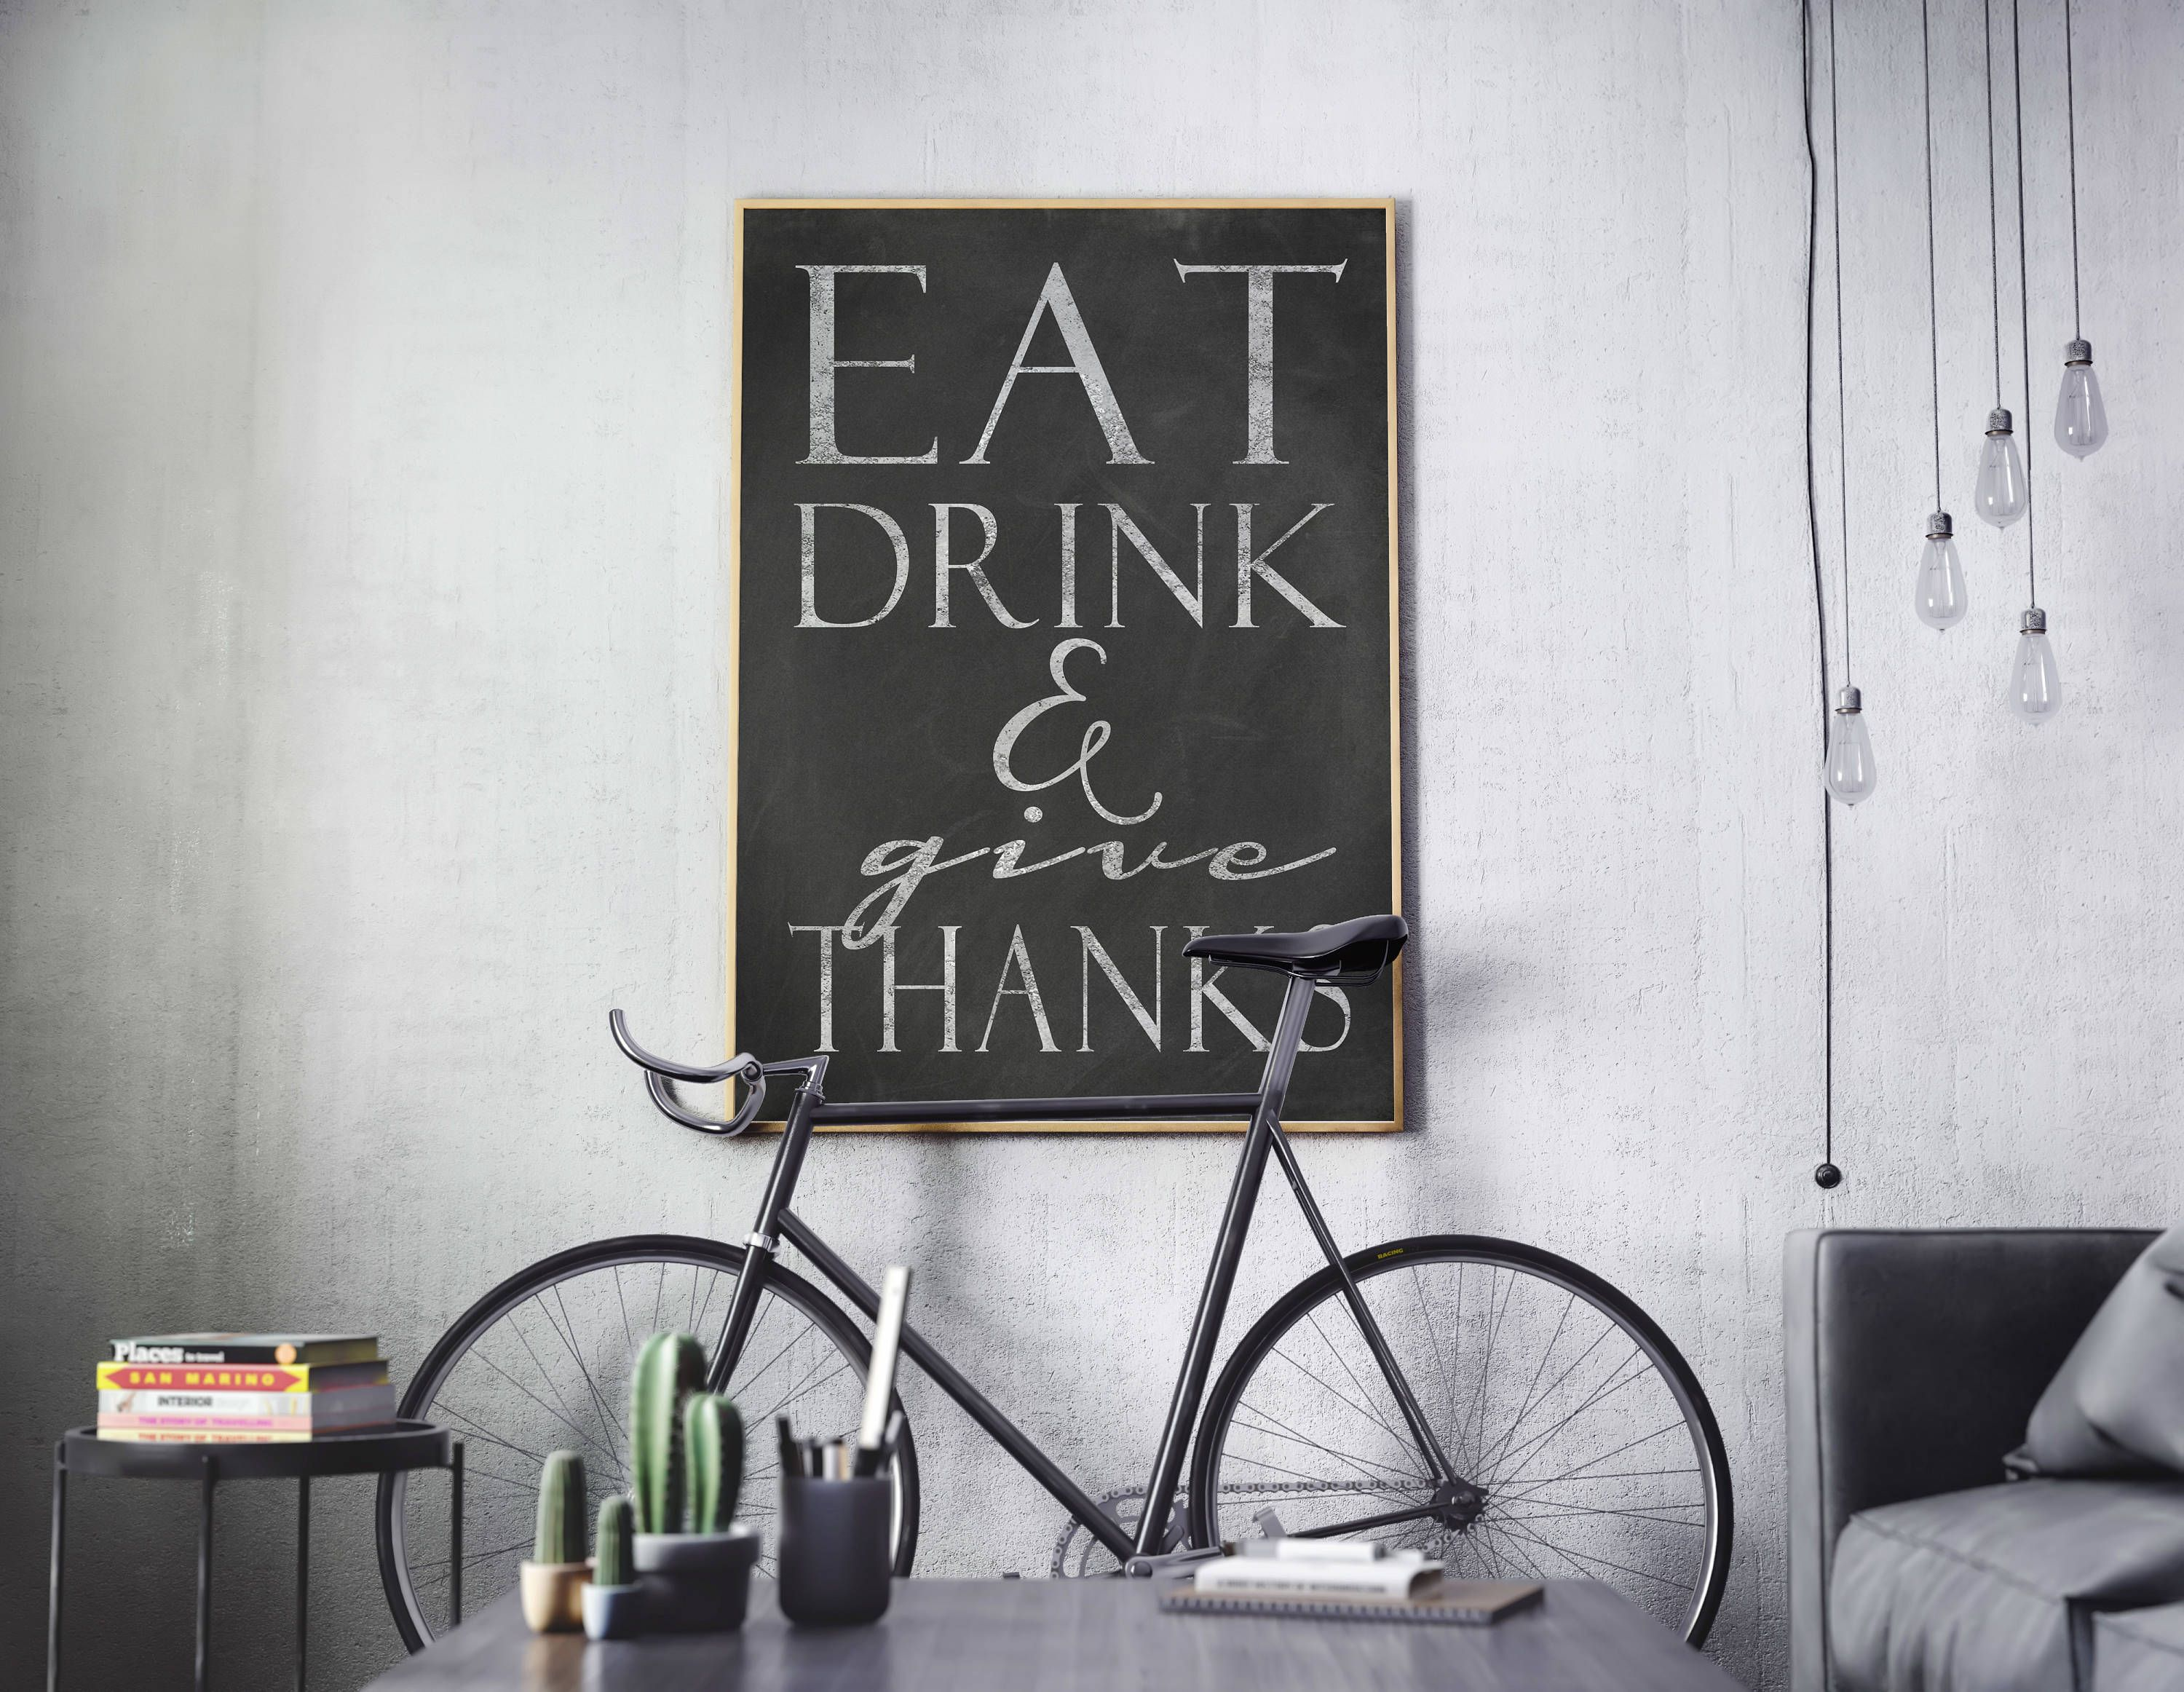 Farmhouse Style Chalkboard Instant Download Eat Drink And Give Thanks Printable Art Rustic Print 16x20 11x14 8x10 Printable Art Stronger Than You Think Chalkboard